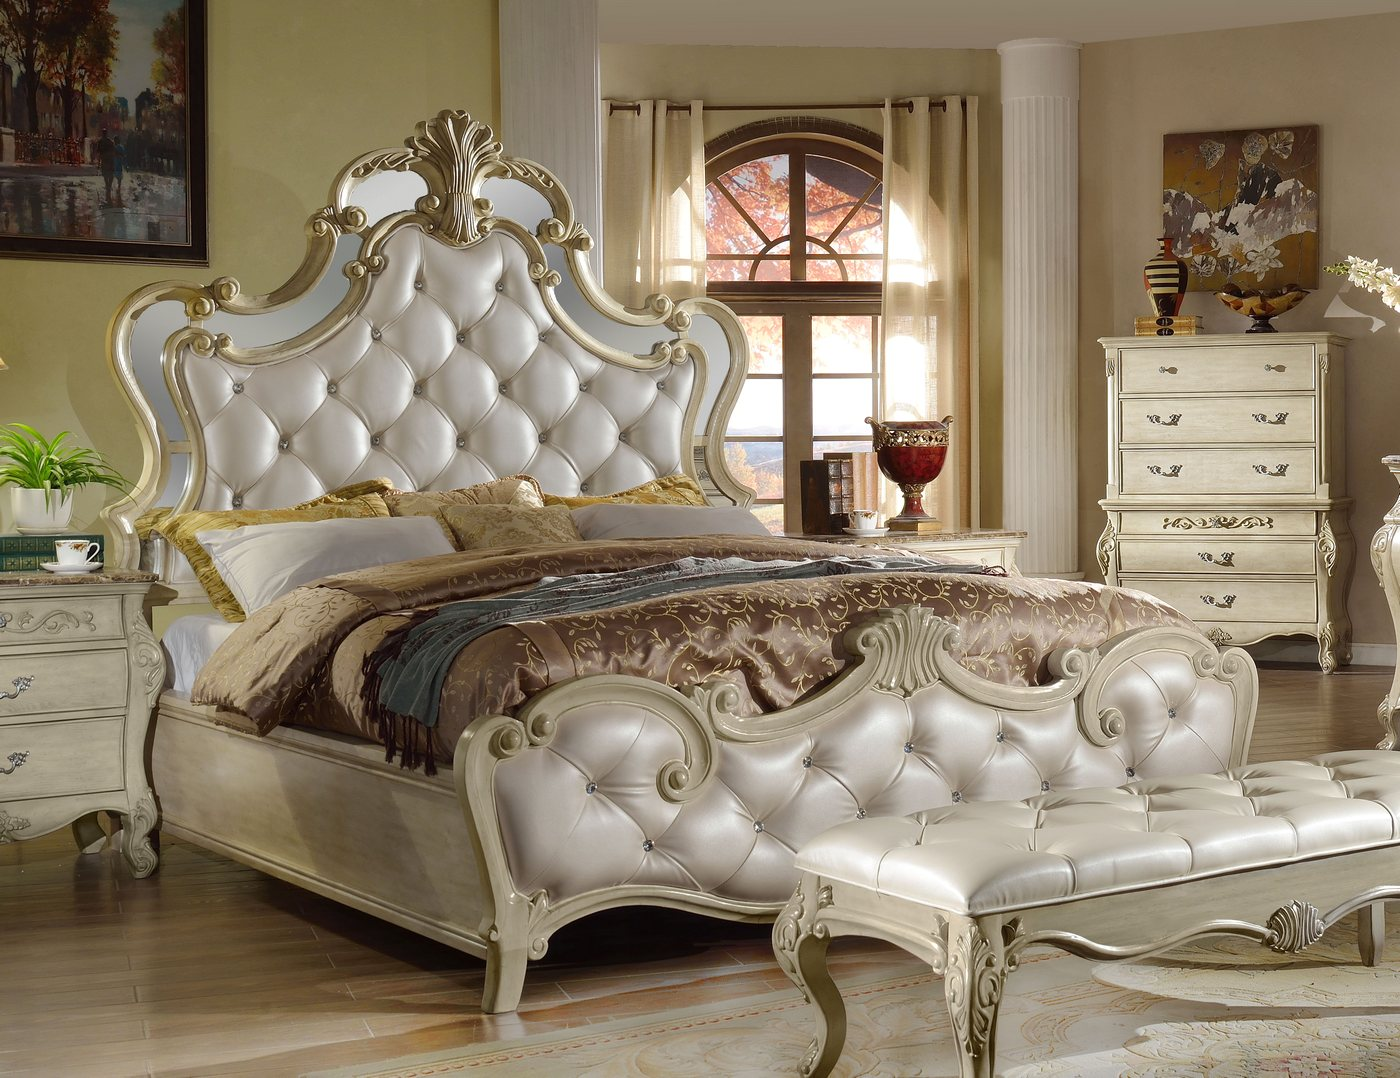 sanctuary white california king bed with crystal tufted headboard. Black Bedroom Furniture Sets. Home Design Ideas